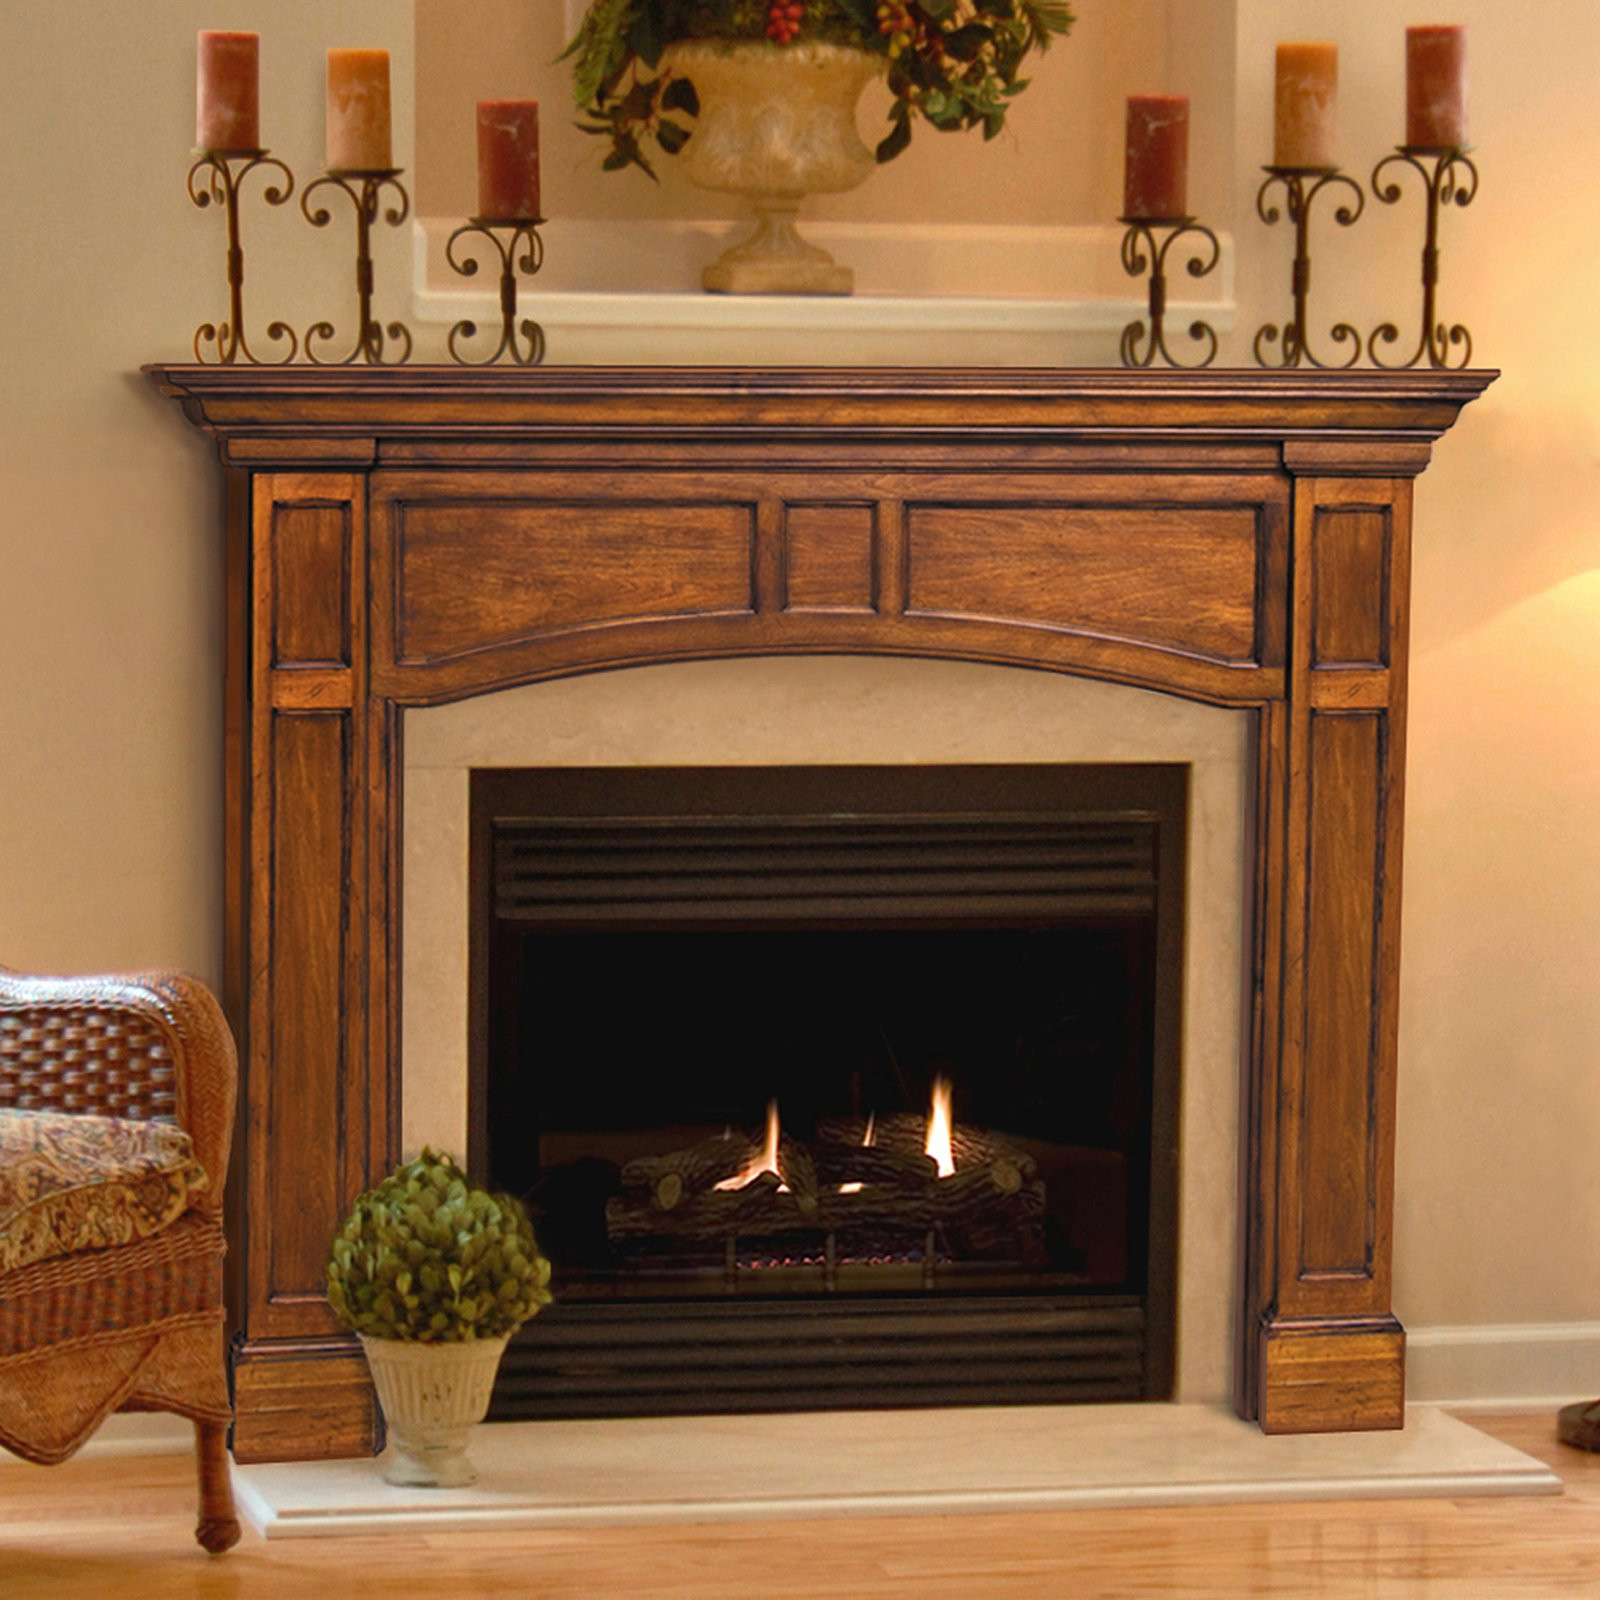 Best ideas about Wood Fireplace Mantels . Save or Pin Pearl Mantels Vance Wood Fireplace Mantel Surround Now.